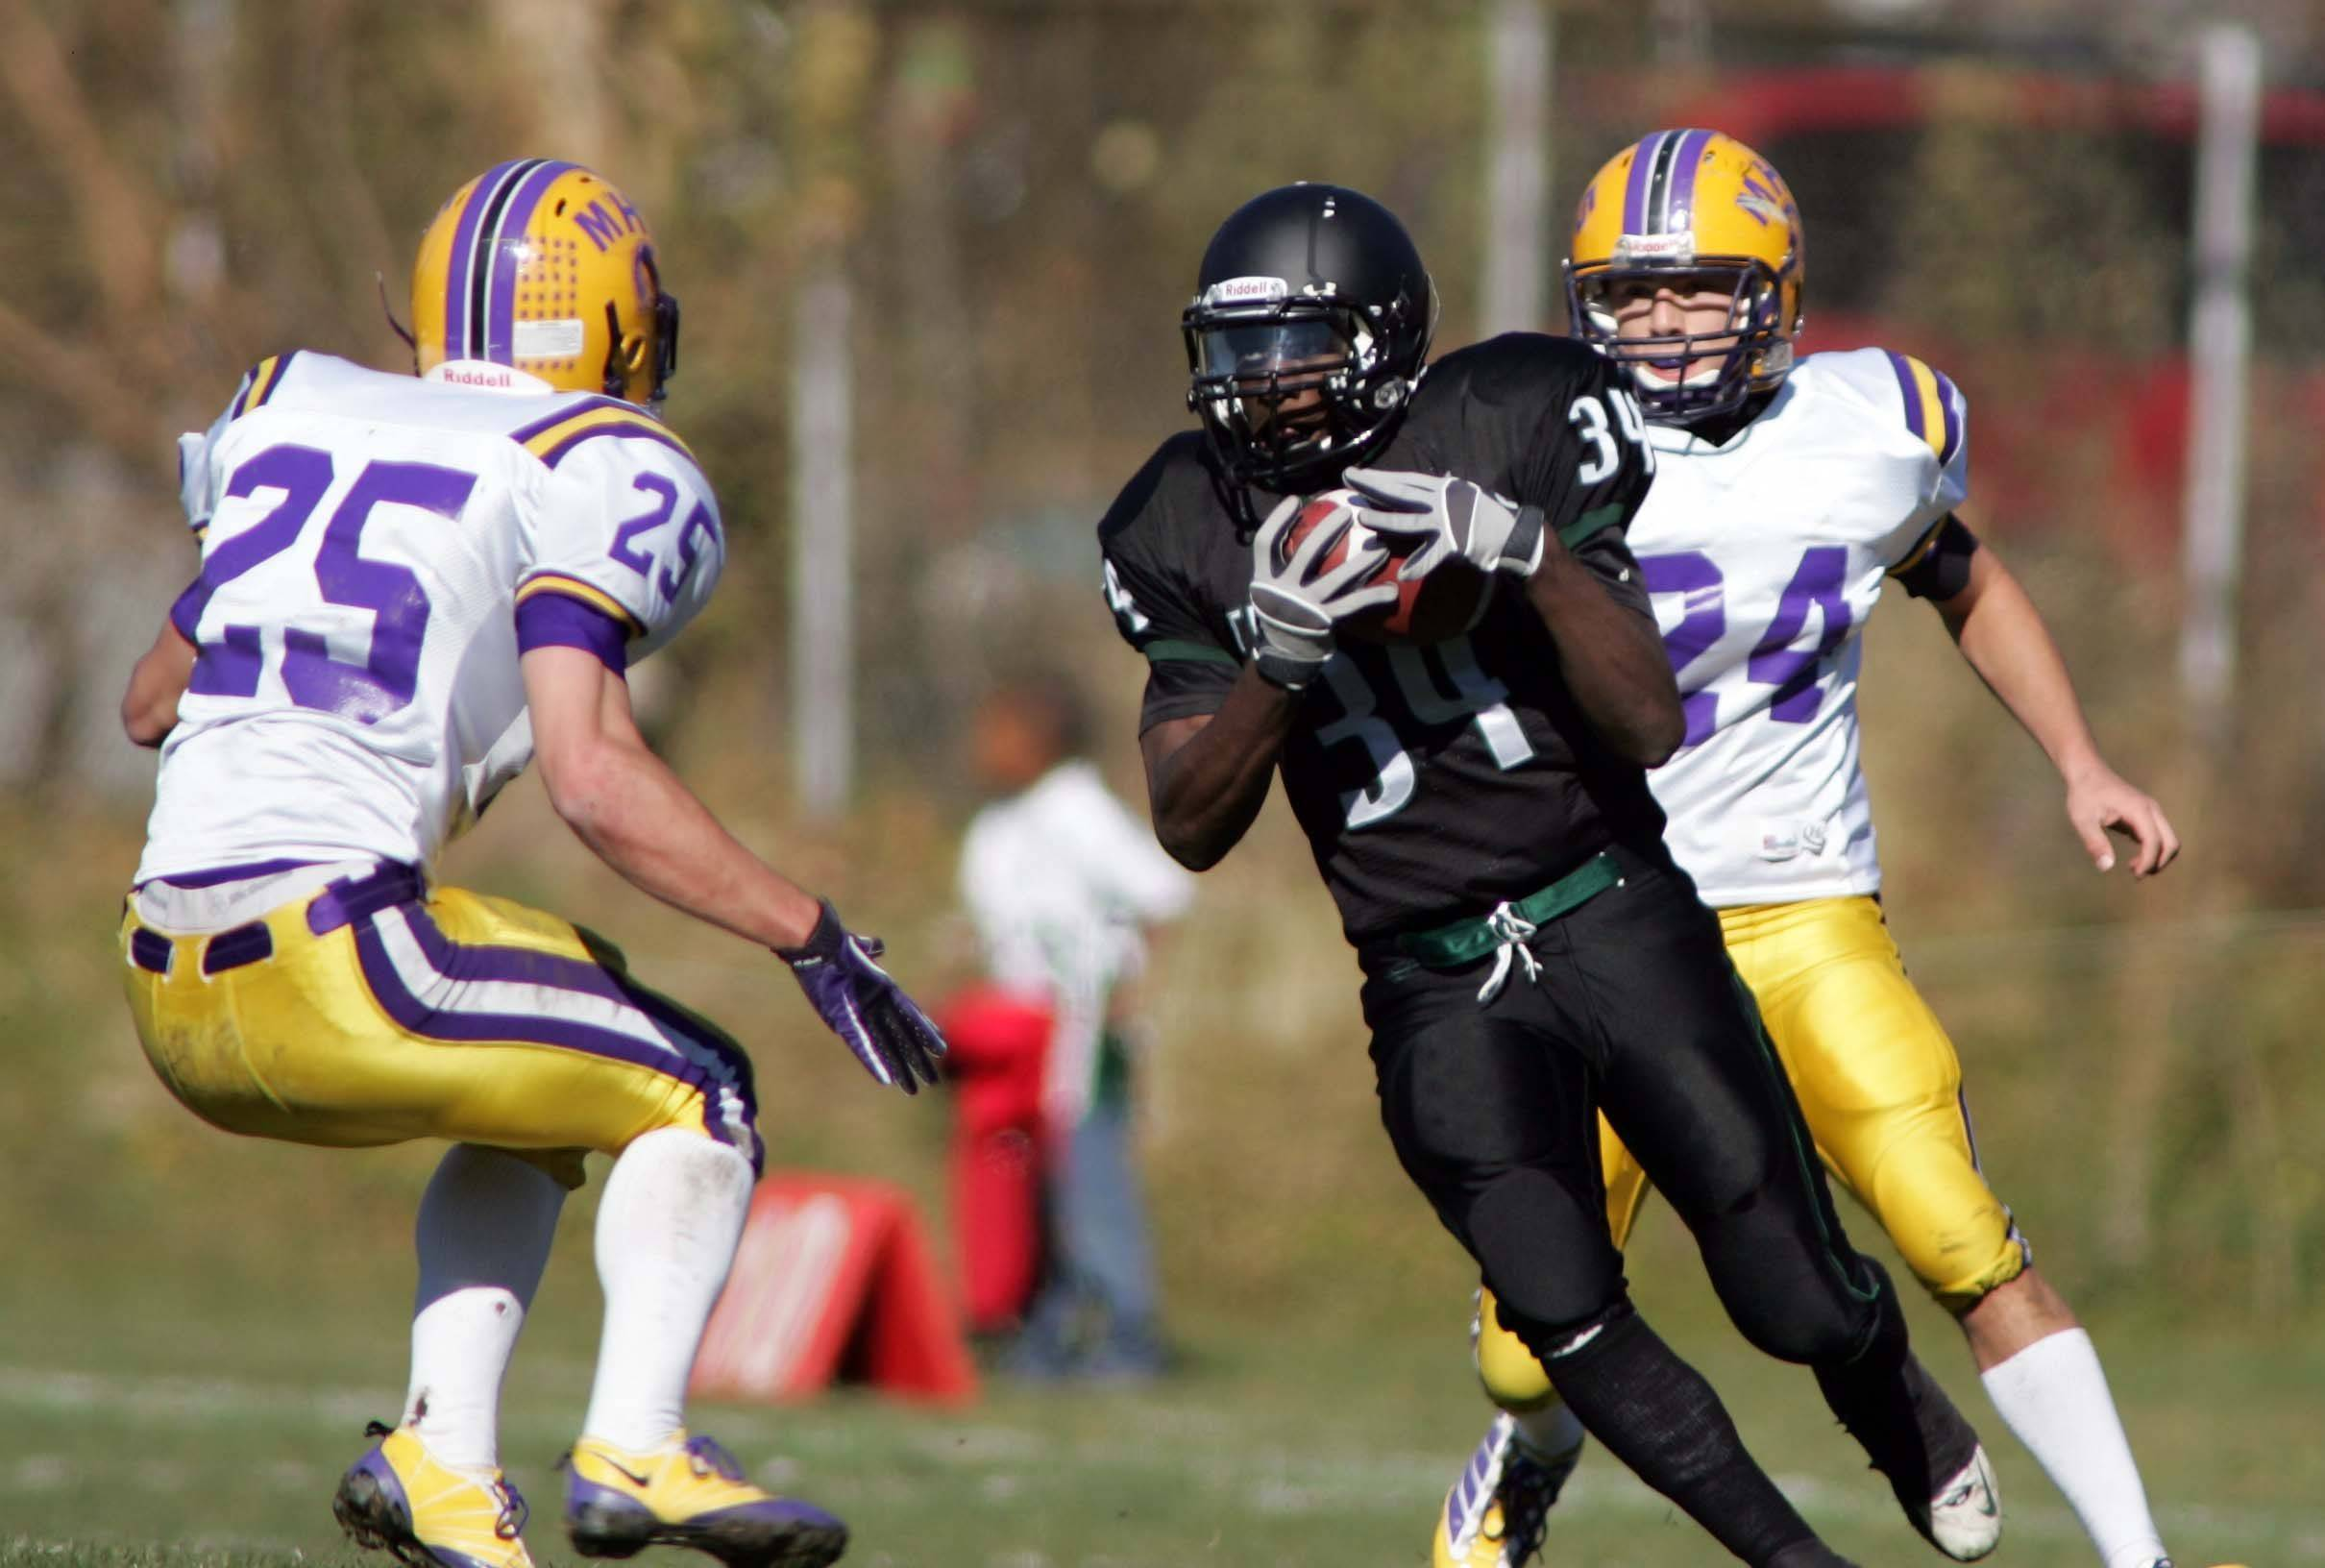 St. Edward's DeVontae, 34, works up field past Mendota's Evan Carroll, 25, to set up a touchdown during the first quarter of Mendota at St. Edward Class 4A playoff football in Elgin Saturday, November 6, 2010.